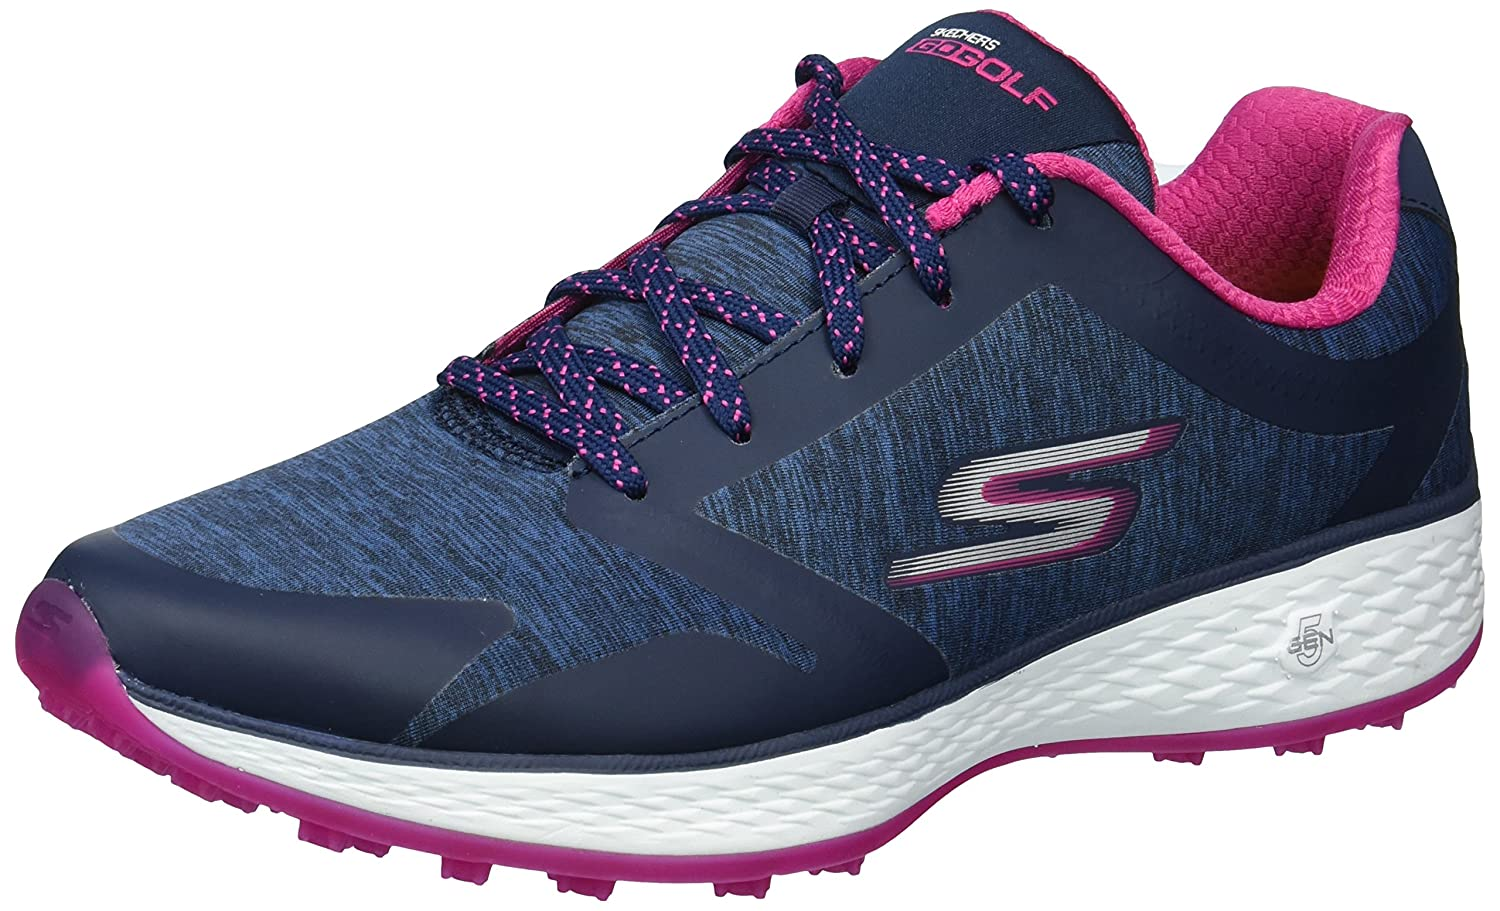 Skechers Women's Go Golf Birdie Golf Shoe B074VJVKLC 9.5 B(M) US|Navy/Pink Heathered